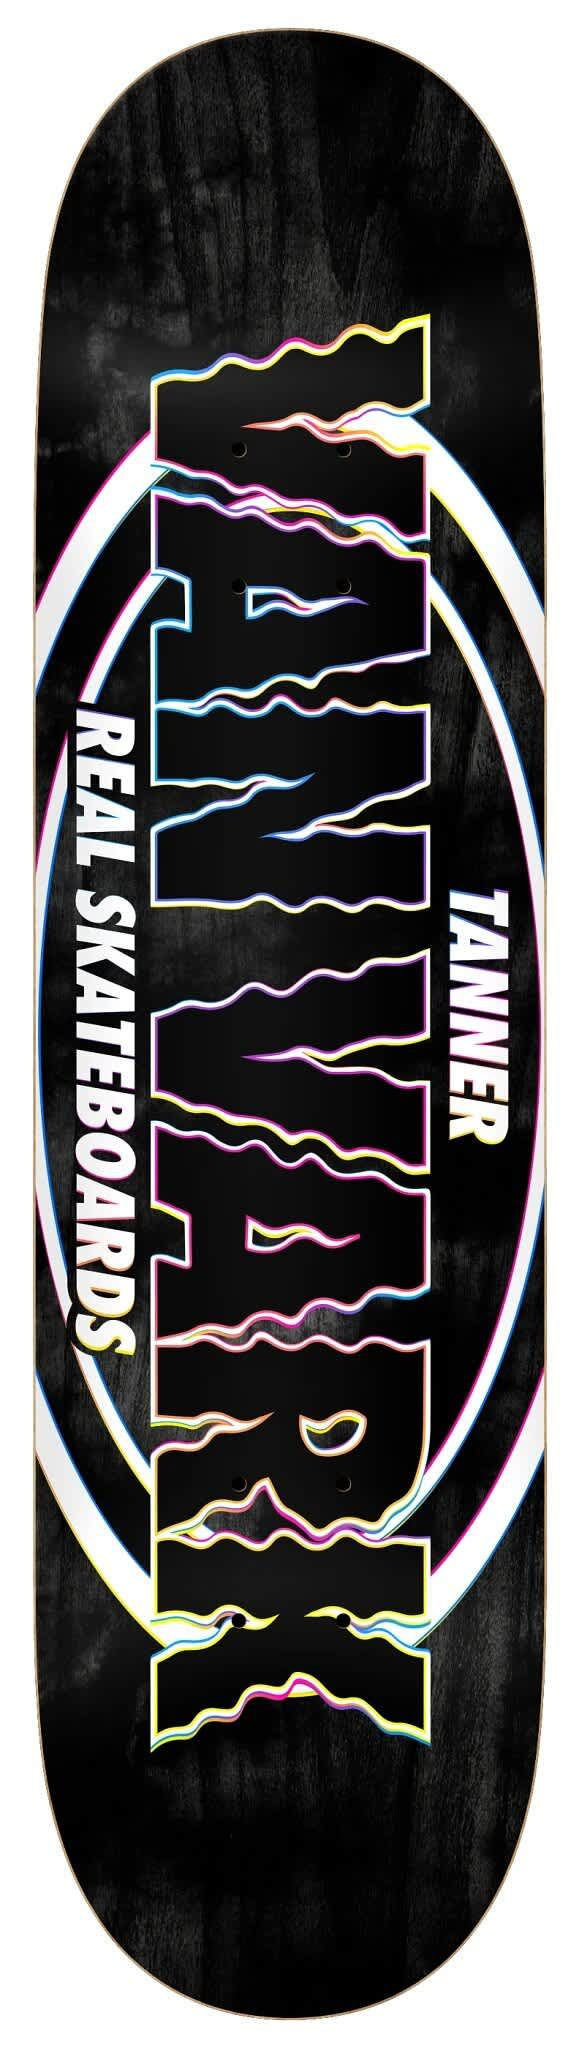 REAL Tanner Pro Oval Deck 8.38 | Deck by Real Skateboards 1